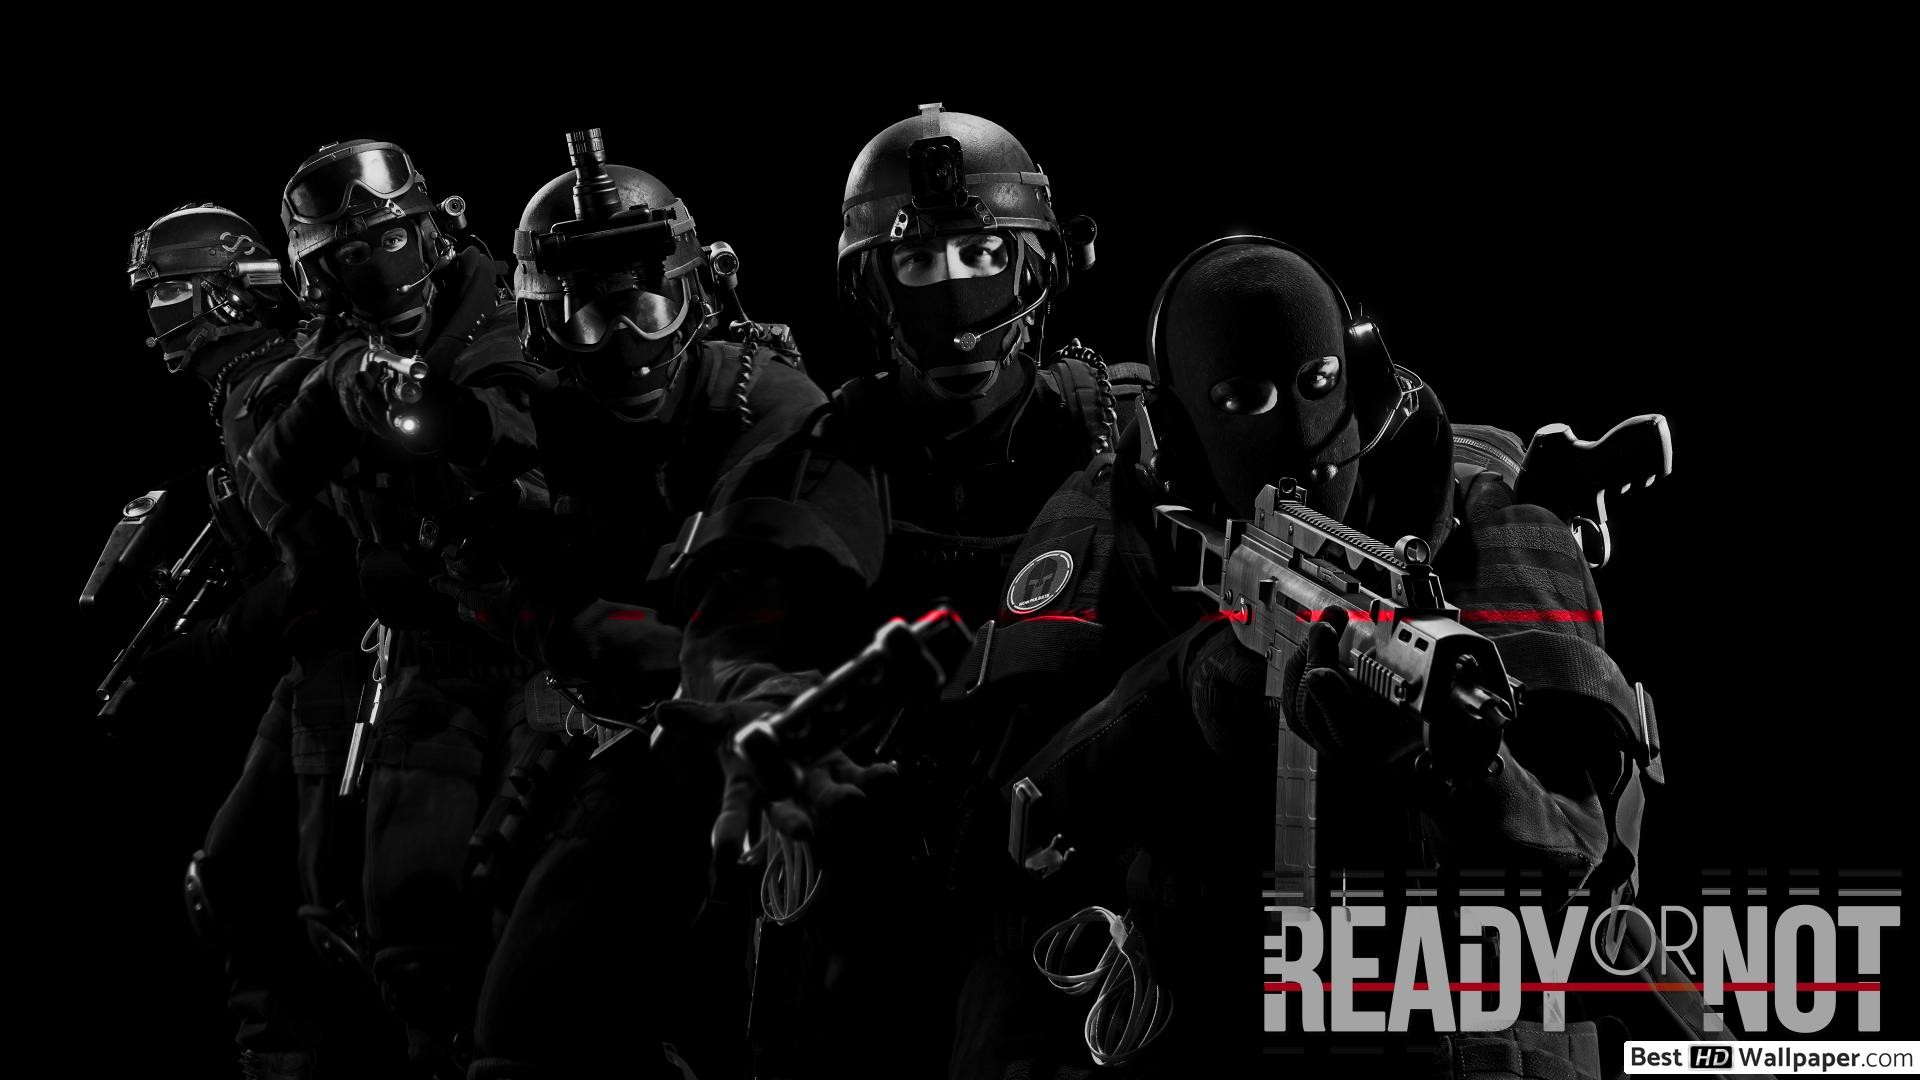 1920x1080 Download Ready or not - swat wallpaper